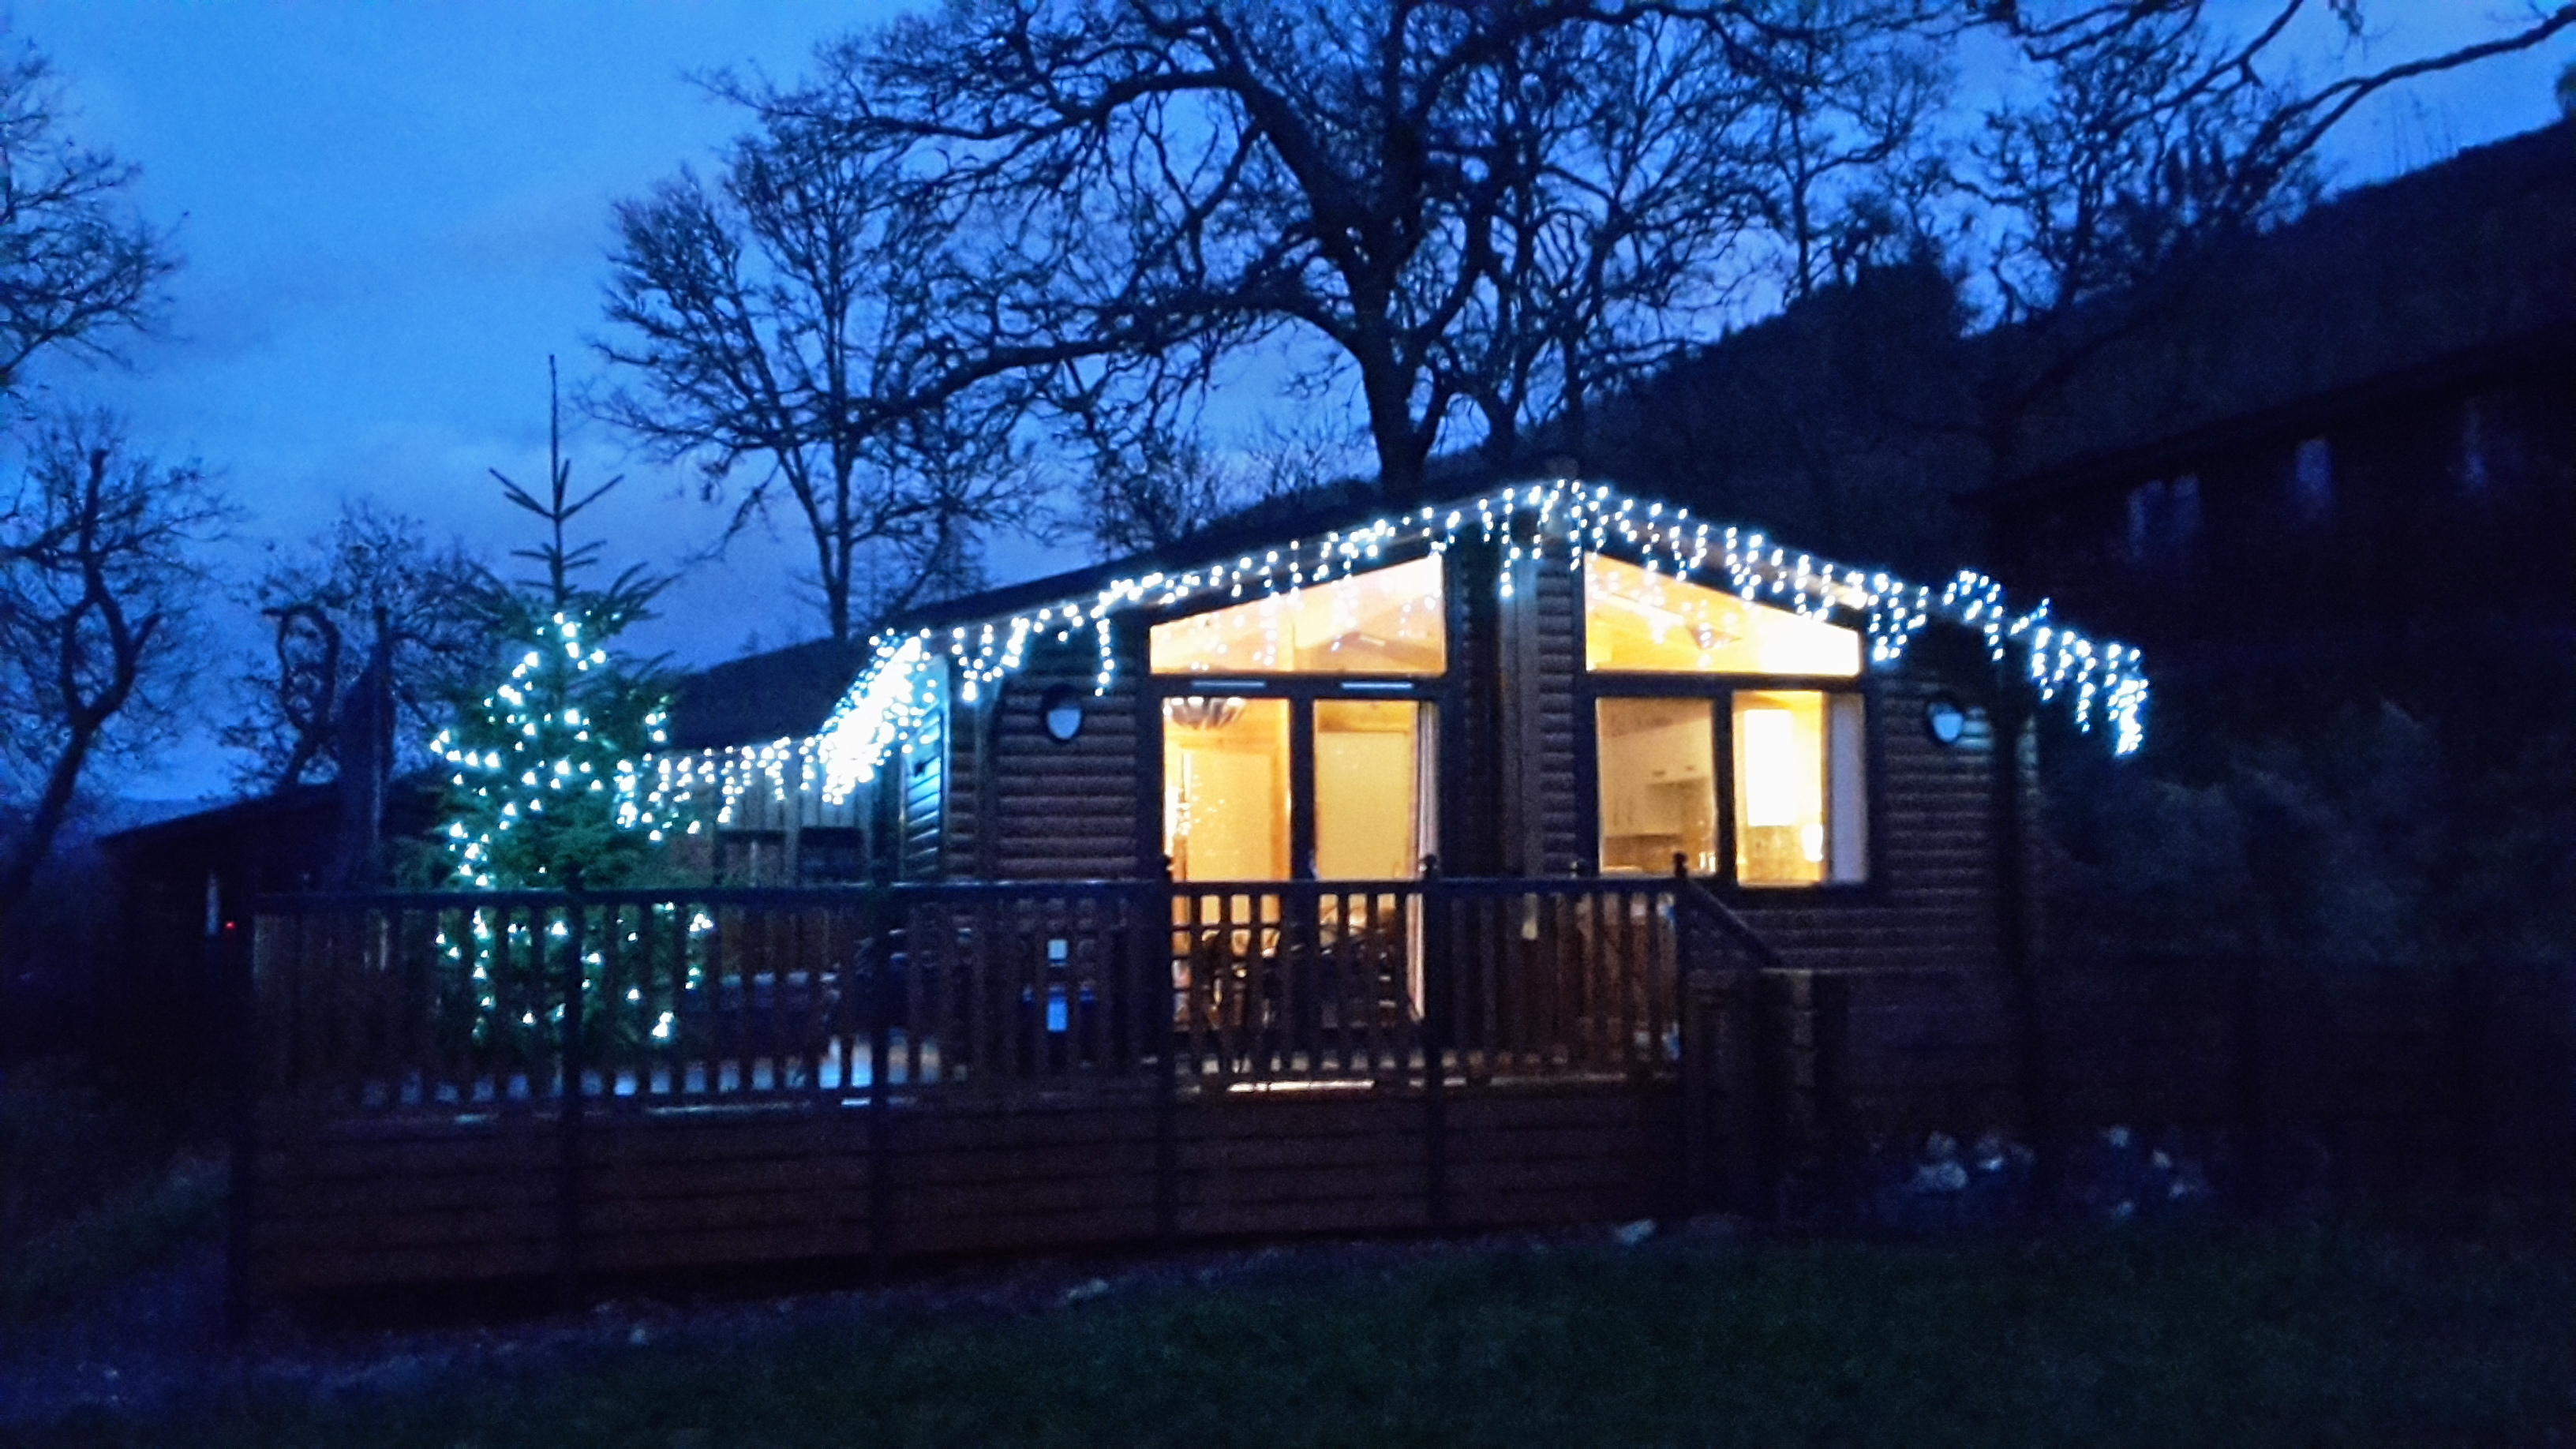 Balquhidder Mhor Lodges ready for the Christmas holidays!